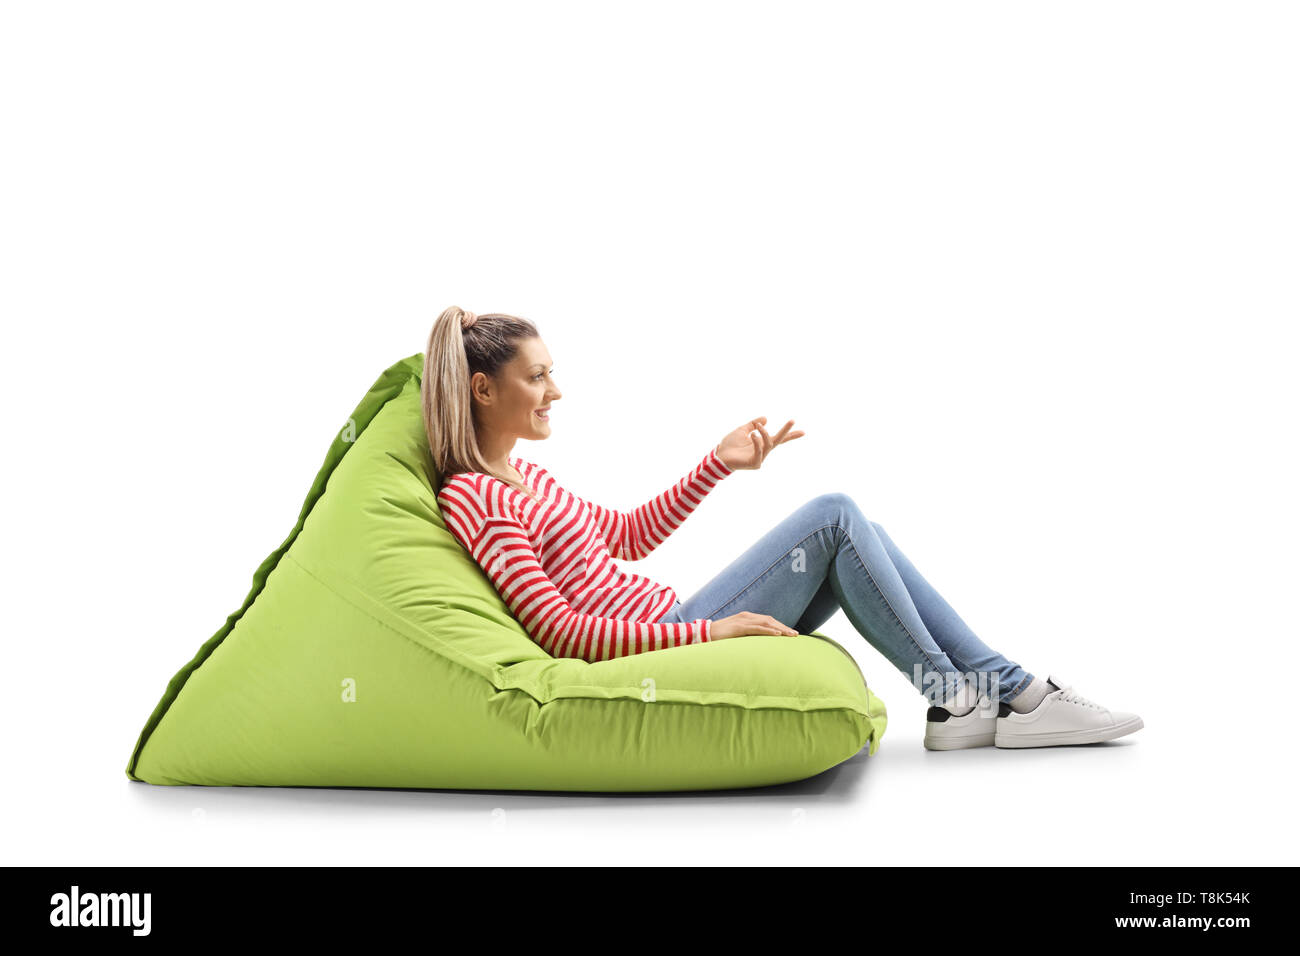 Full length profile shot of a young woman sitting on a bean bag and gesturing with hand isolated on white background - Stock Image